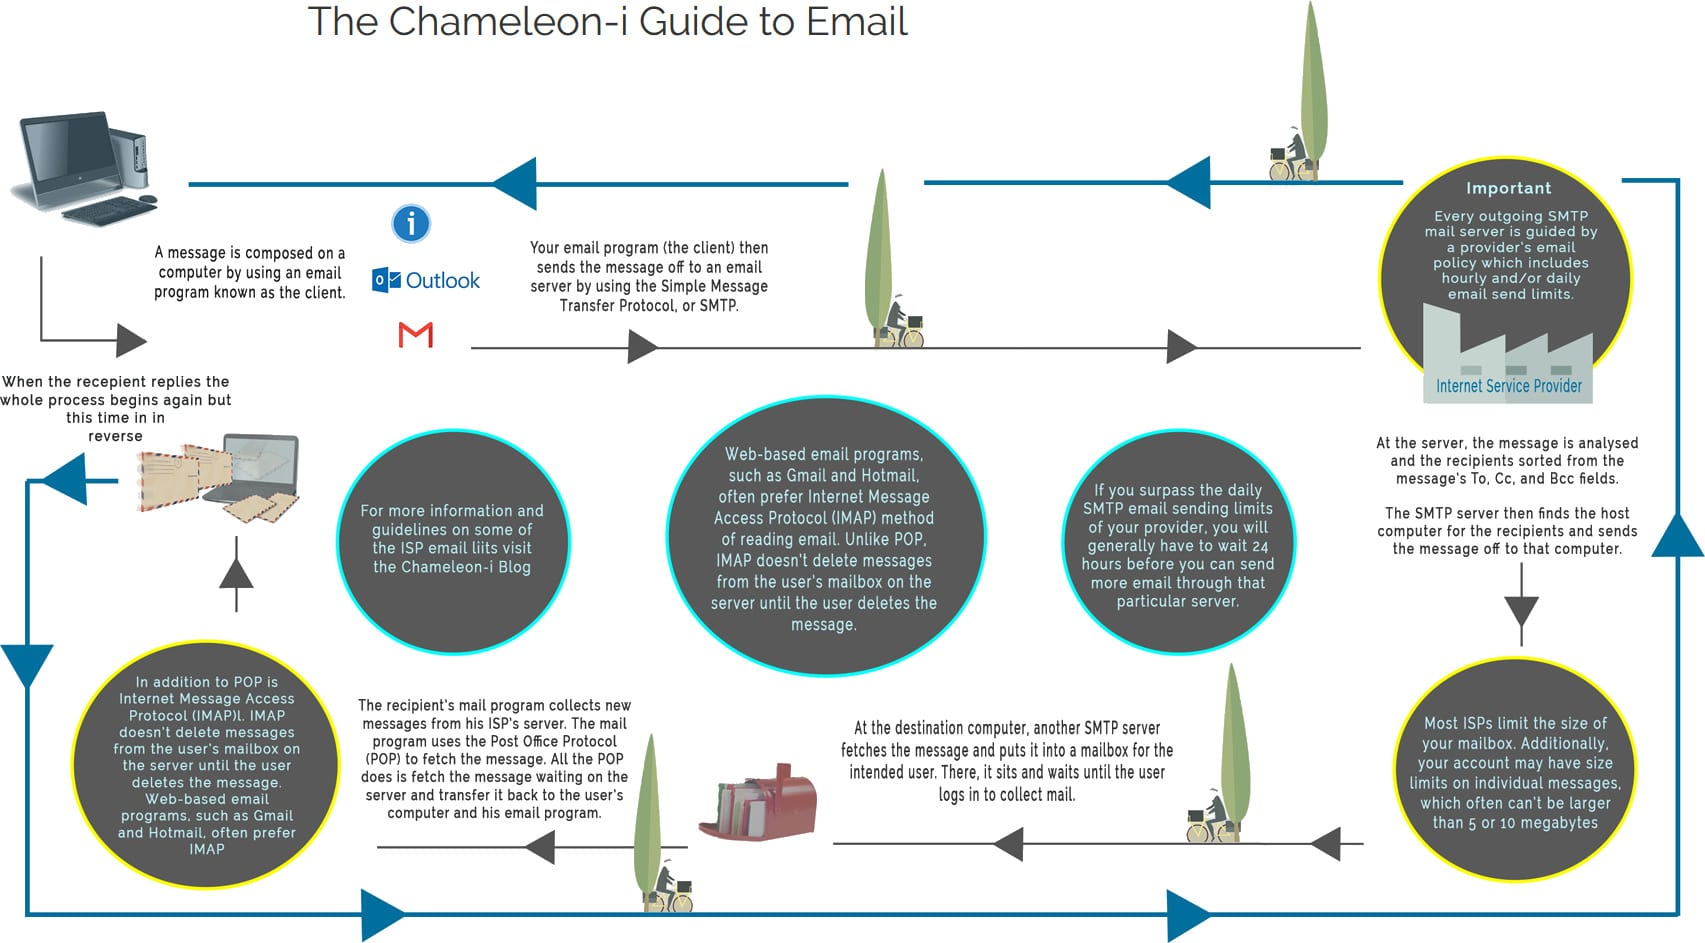 The Chameleon-i Guide to Email